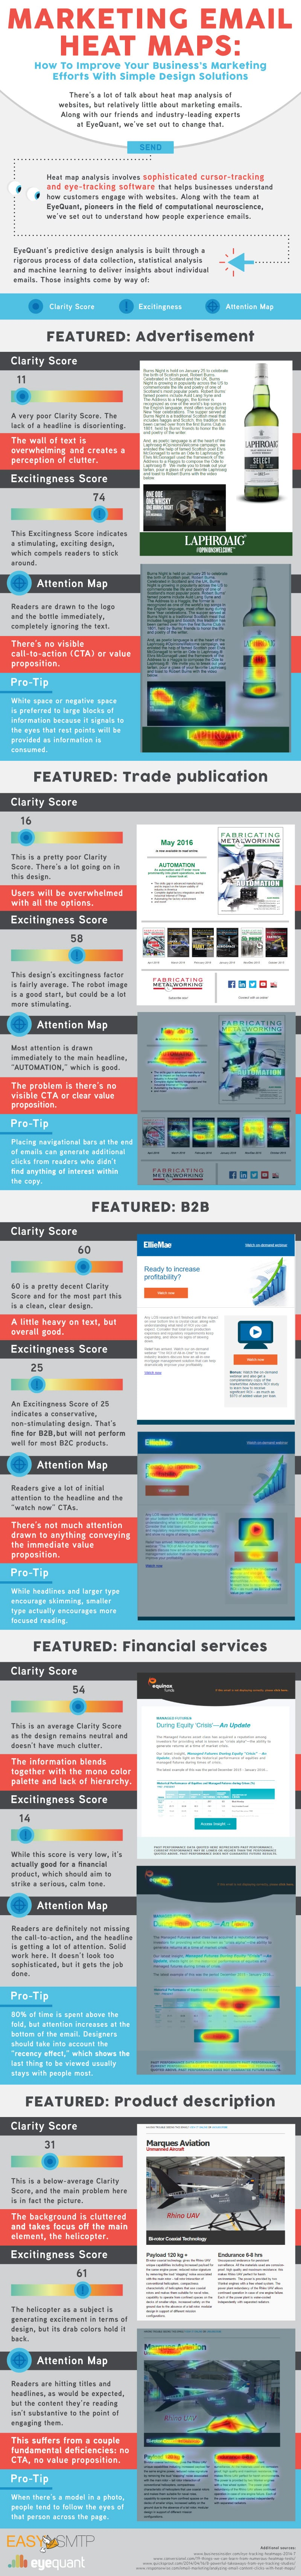 marketing-email-heat-maps-infographic